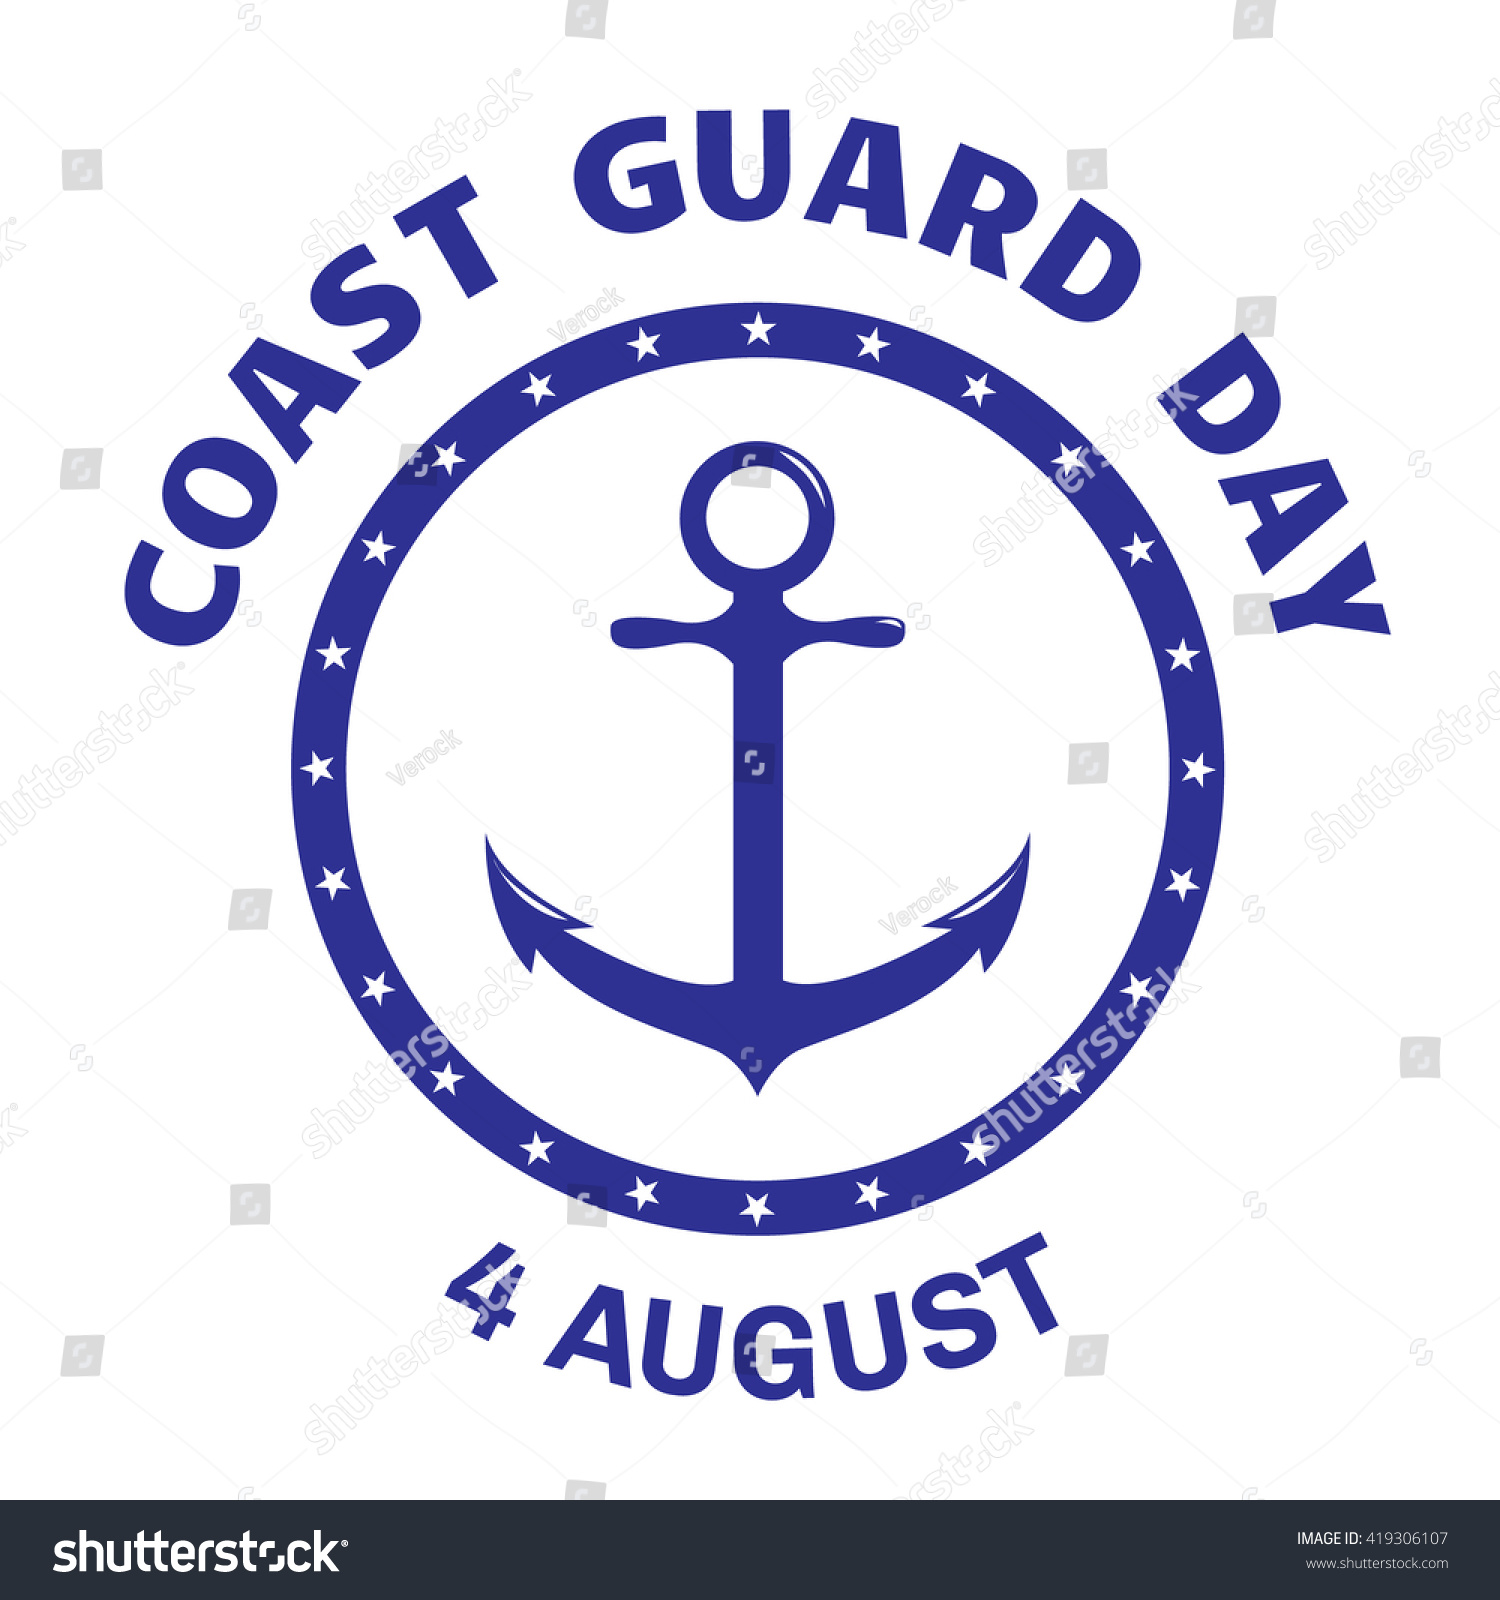 Beautiful pictures of coast guard business cards business cards coast guard day greeting card symbol stock vector magicingreecefo Image collections